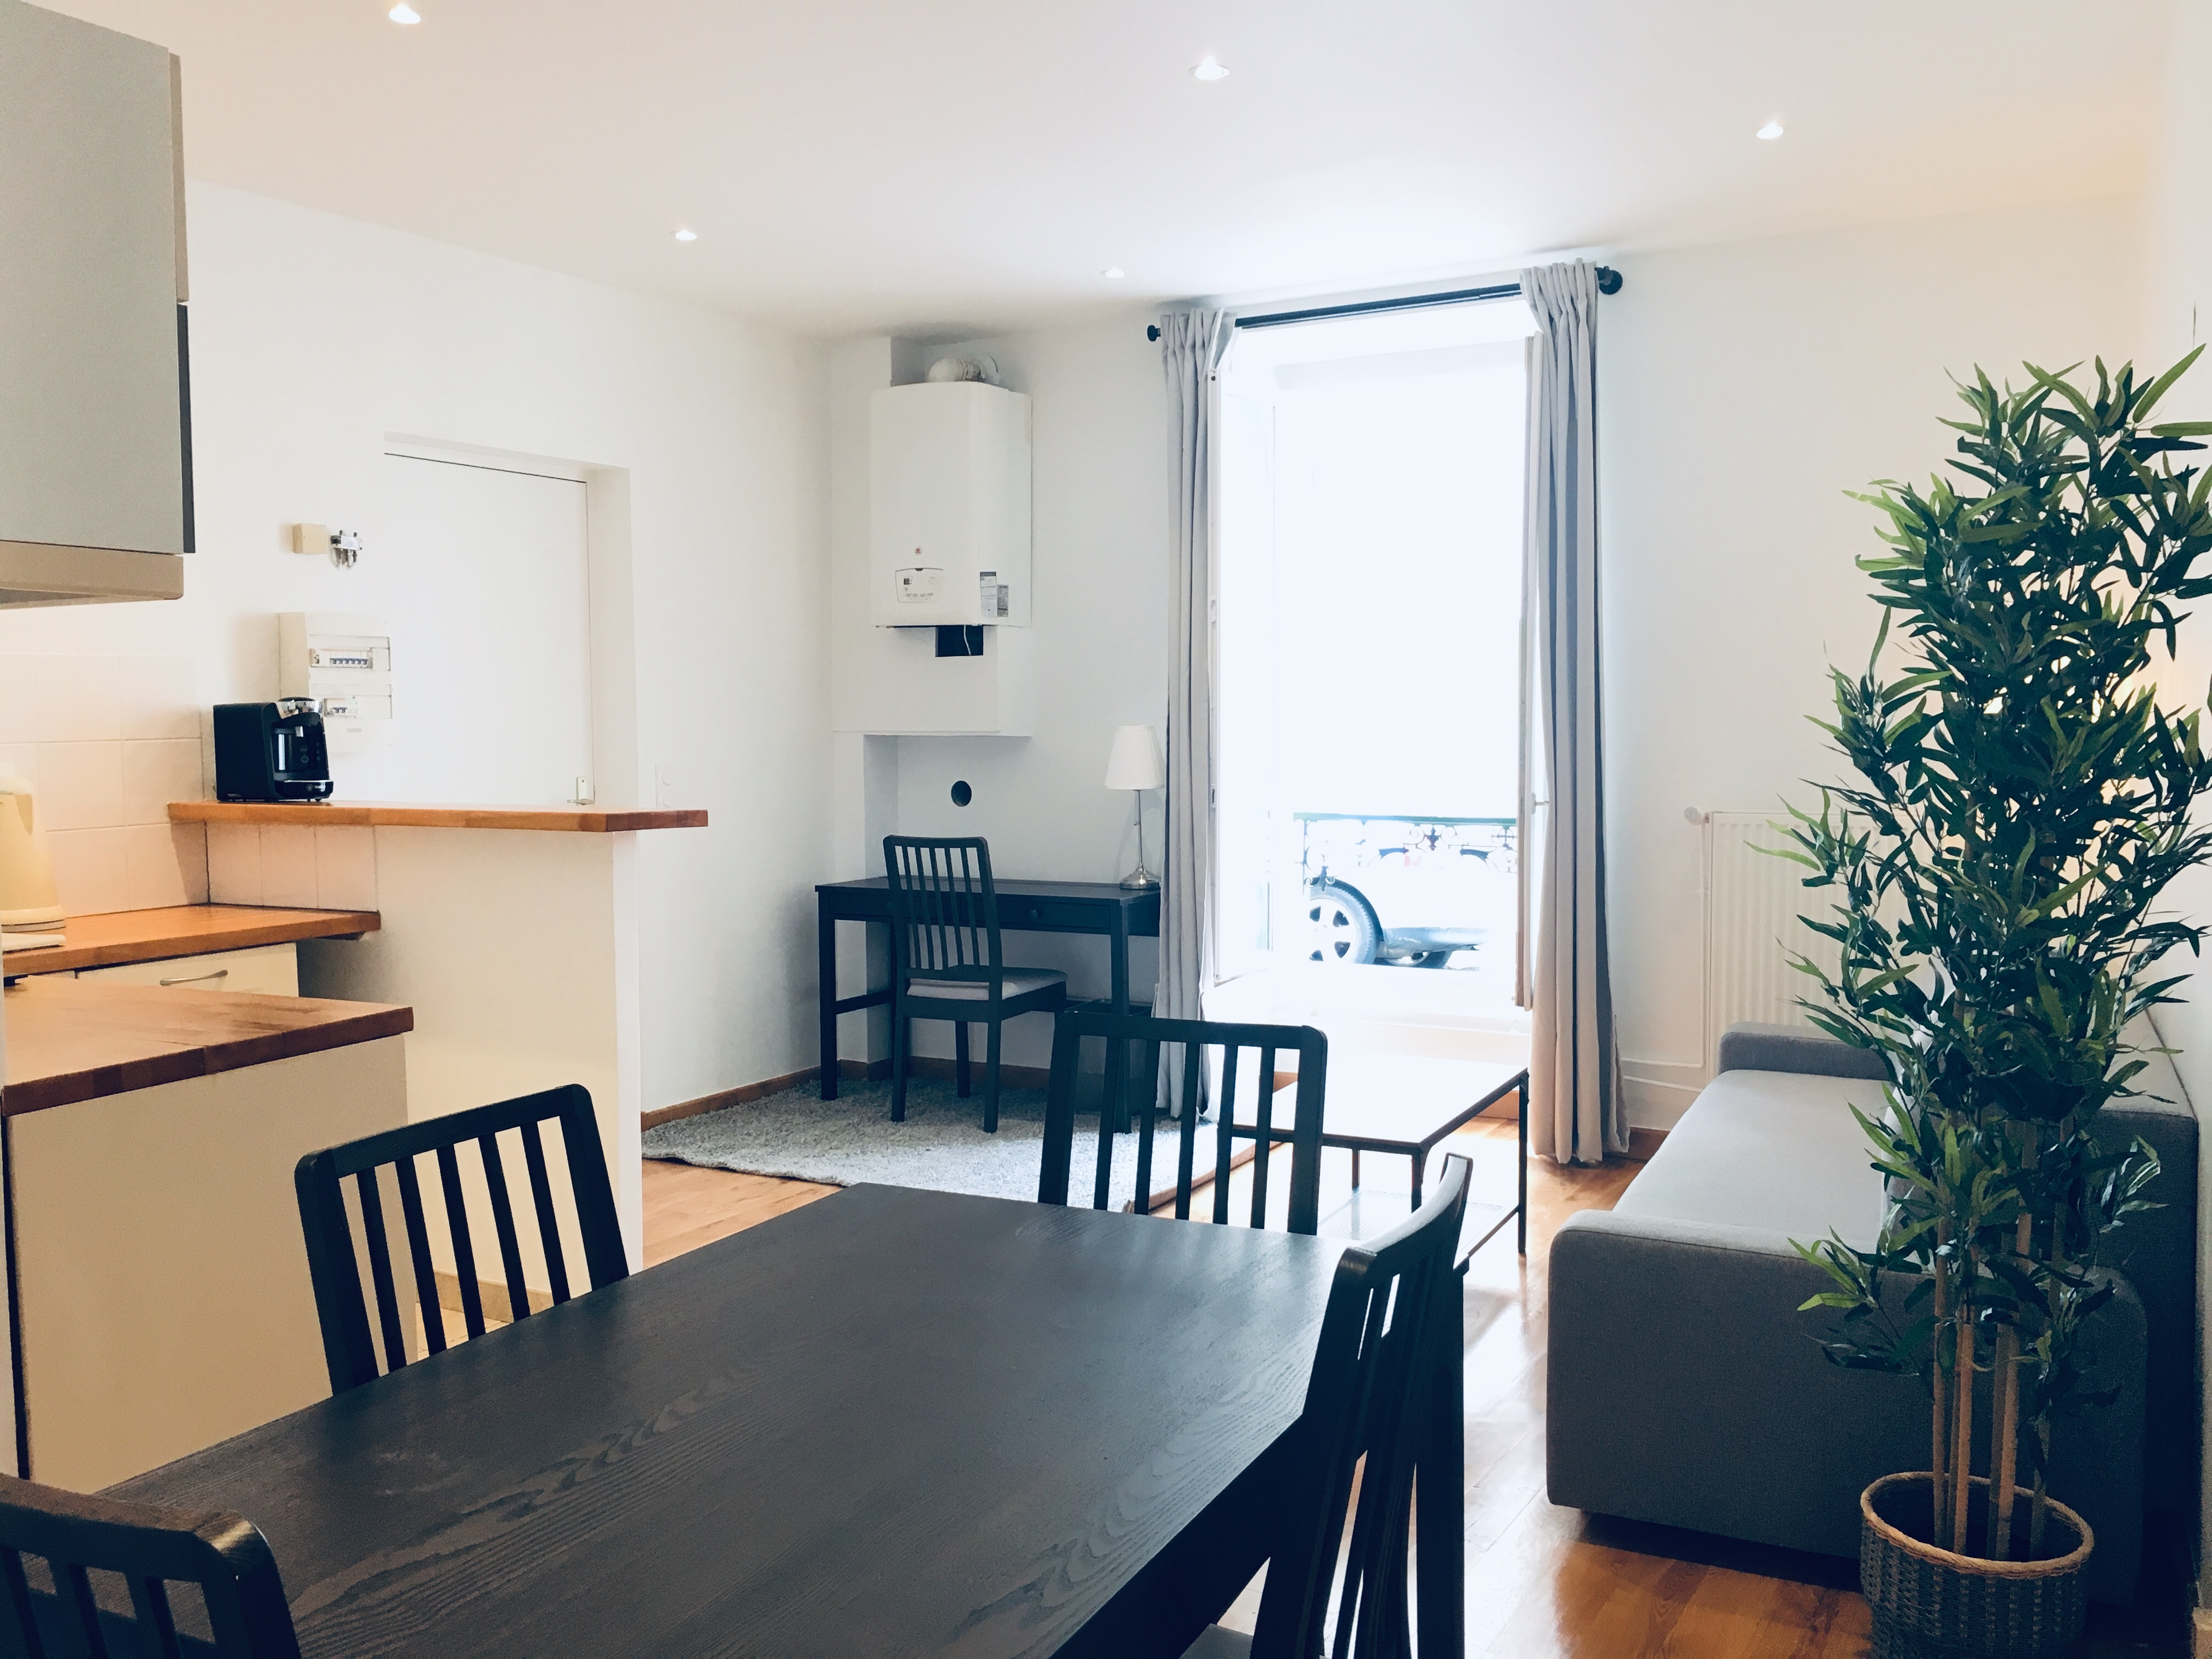 Fontainebleau insead mba housing rent